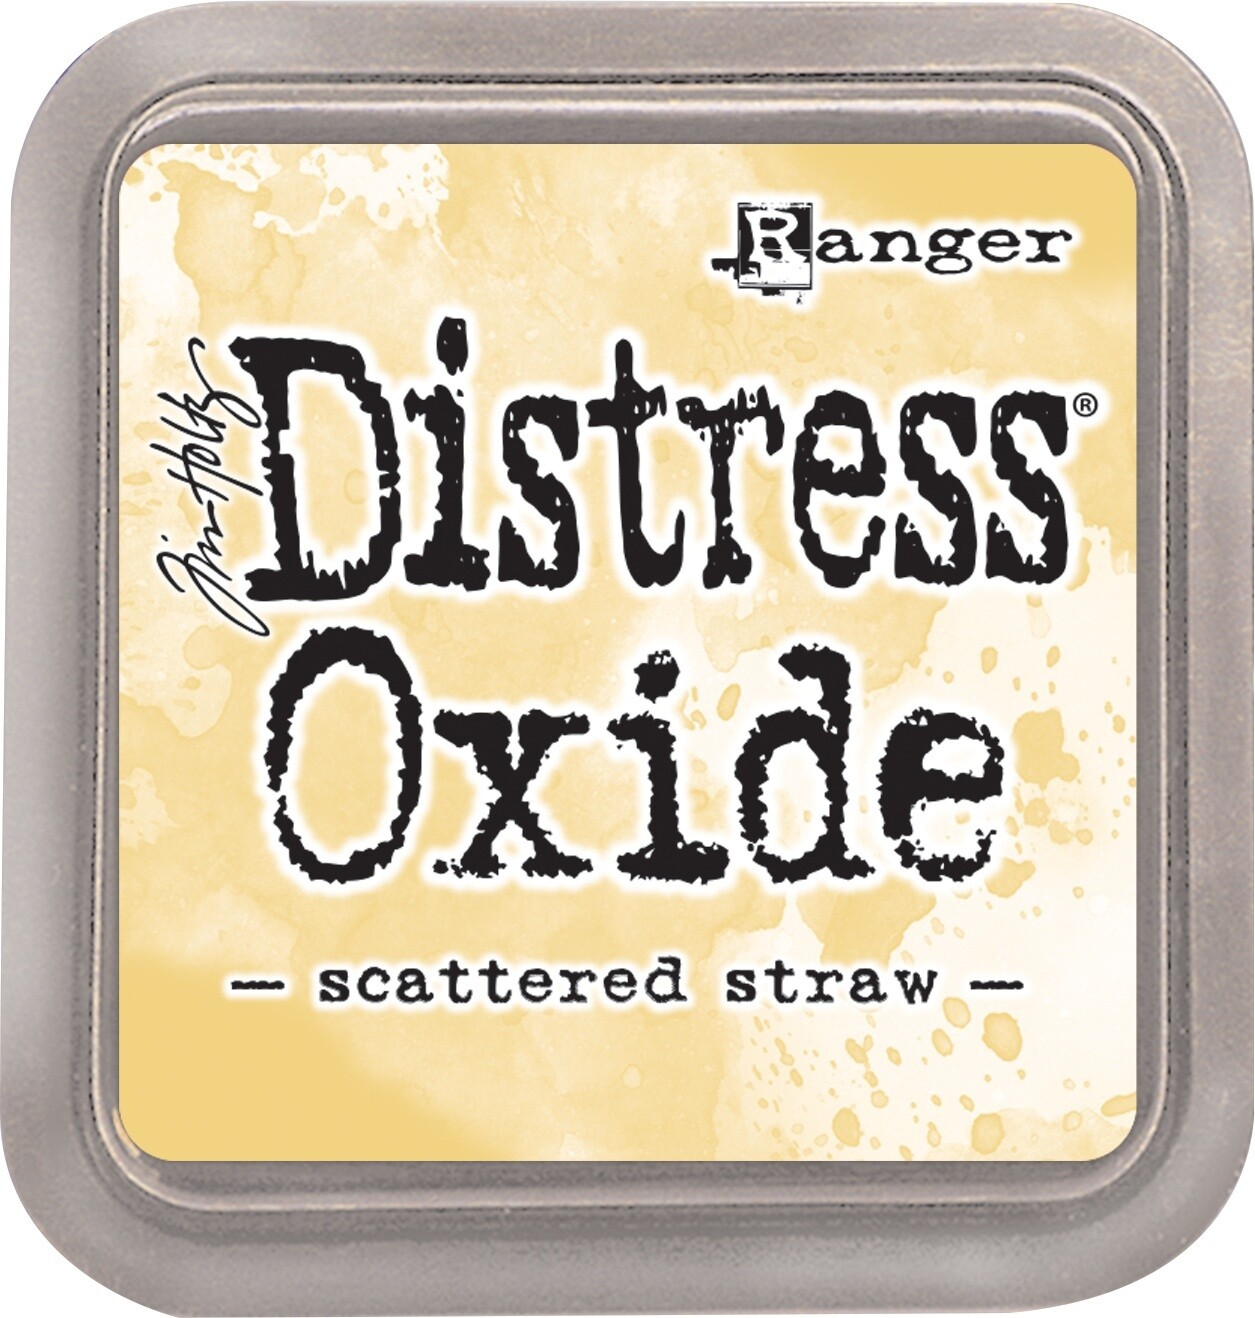 Tim Holtz Distress SCATTERED STRAW Oxides Ink Pad